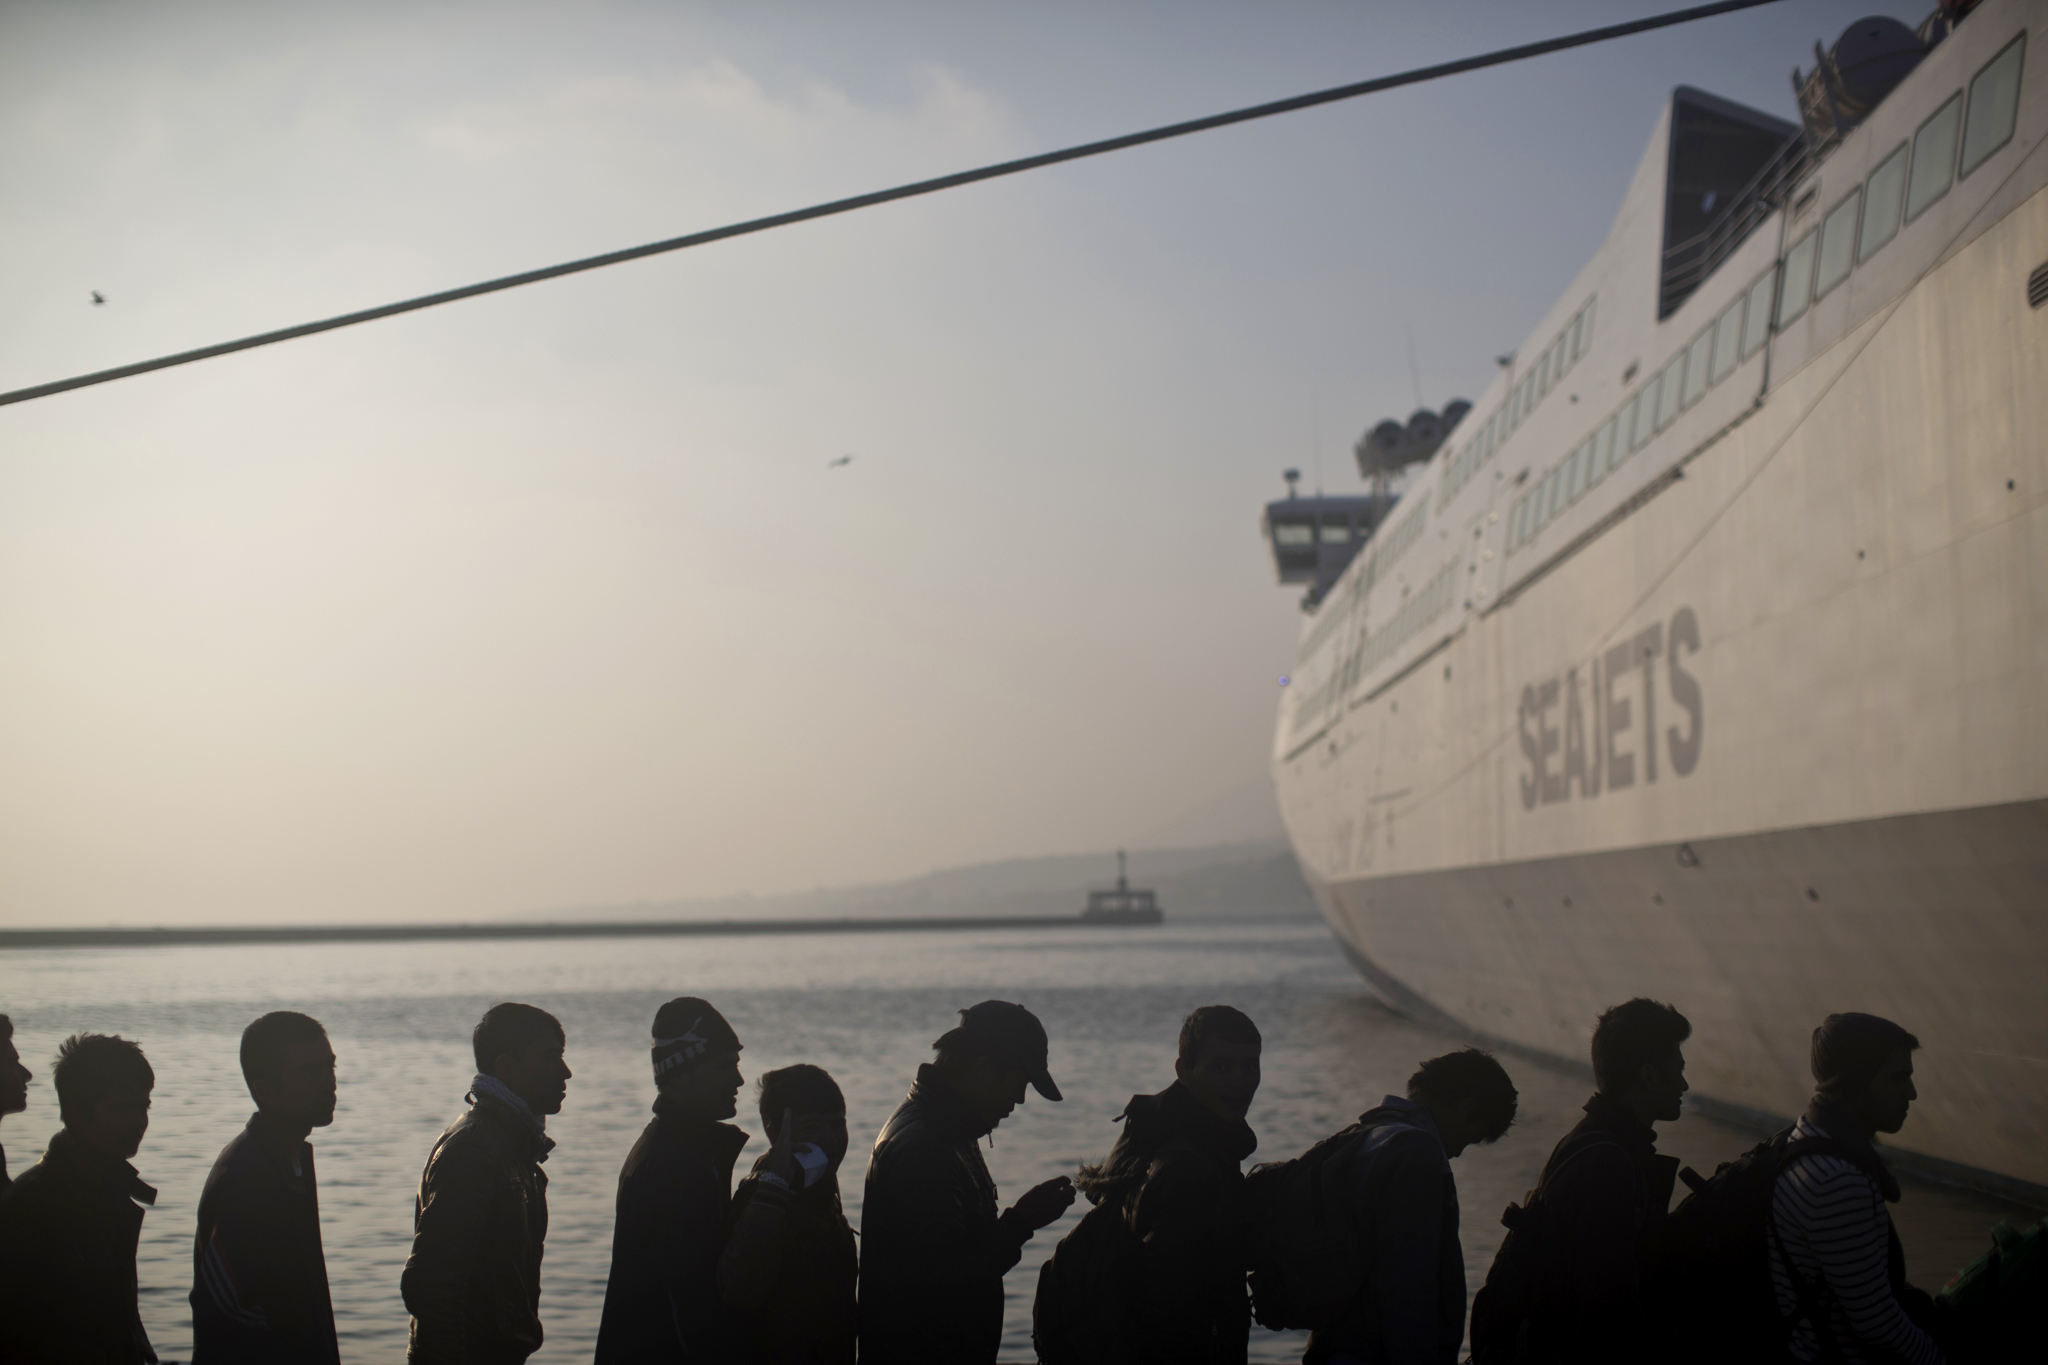 People queue in order to board a ferry at the port of Mytilene on the island of Lesbos, Greece